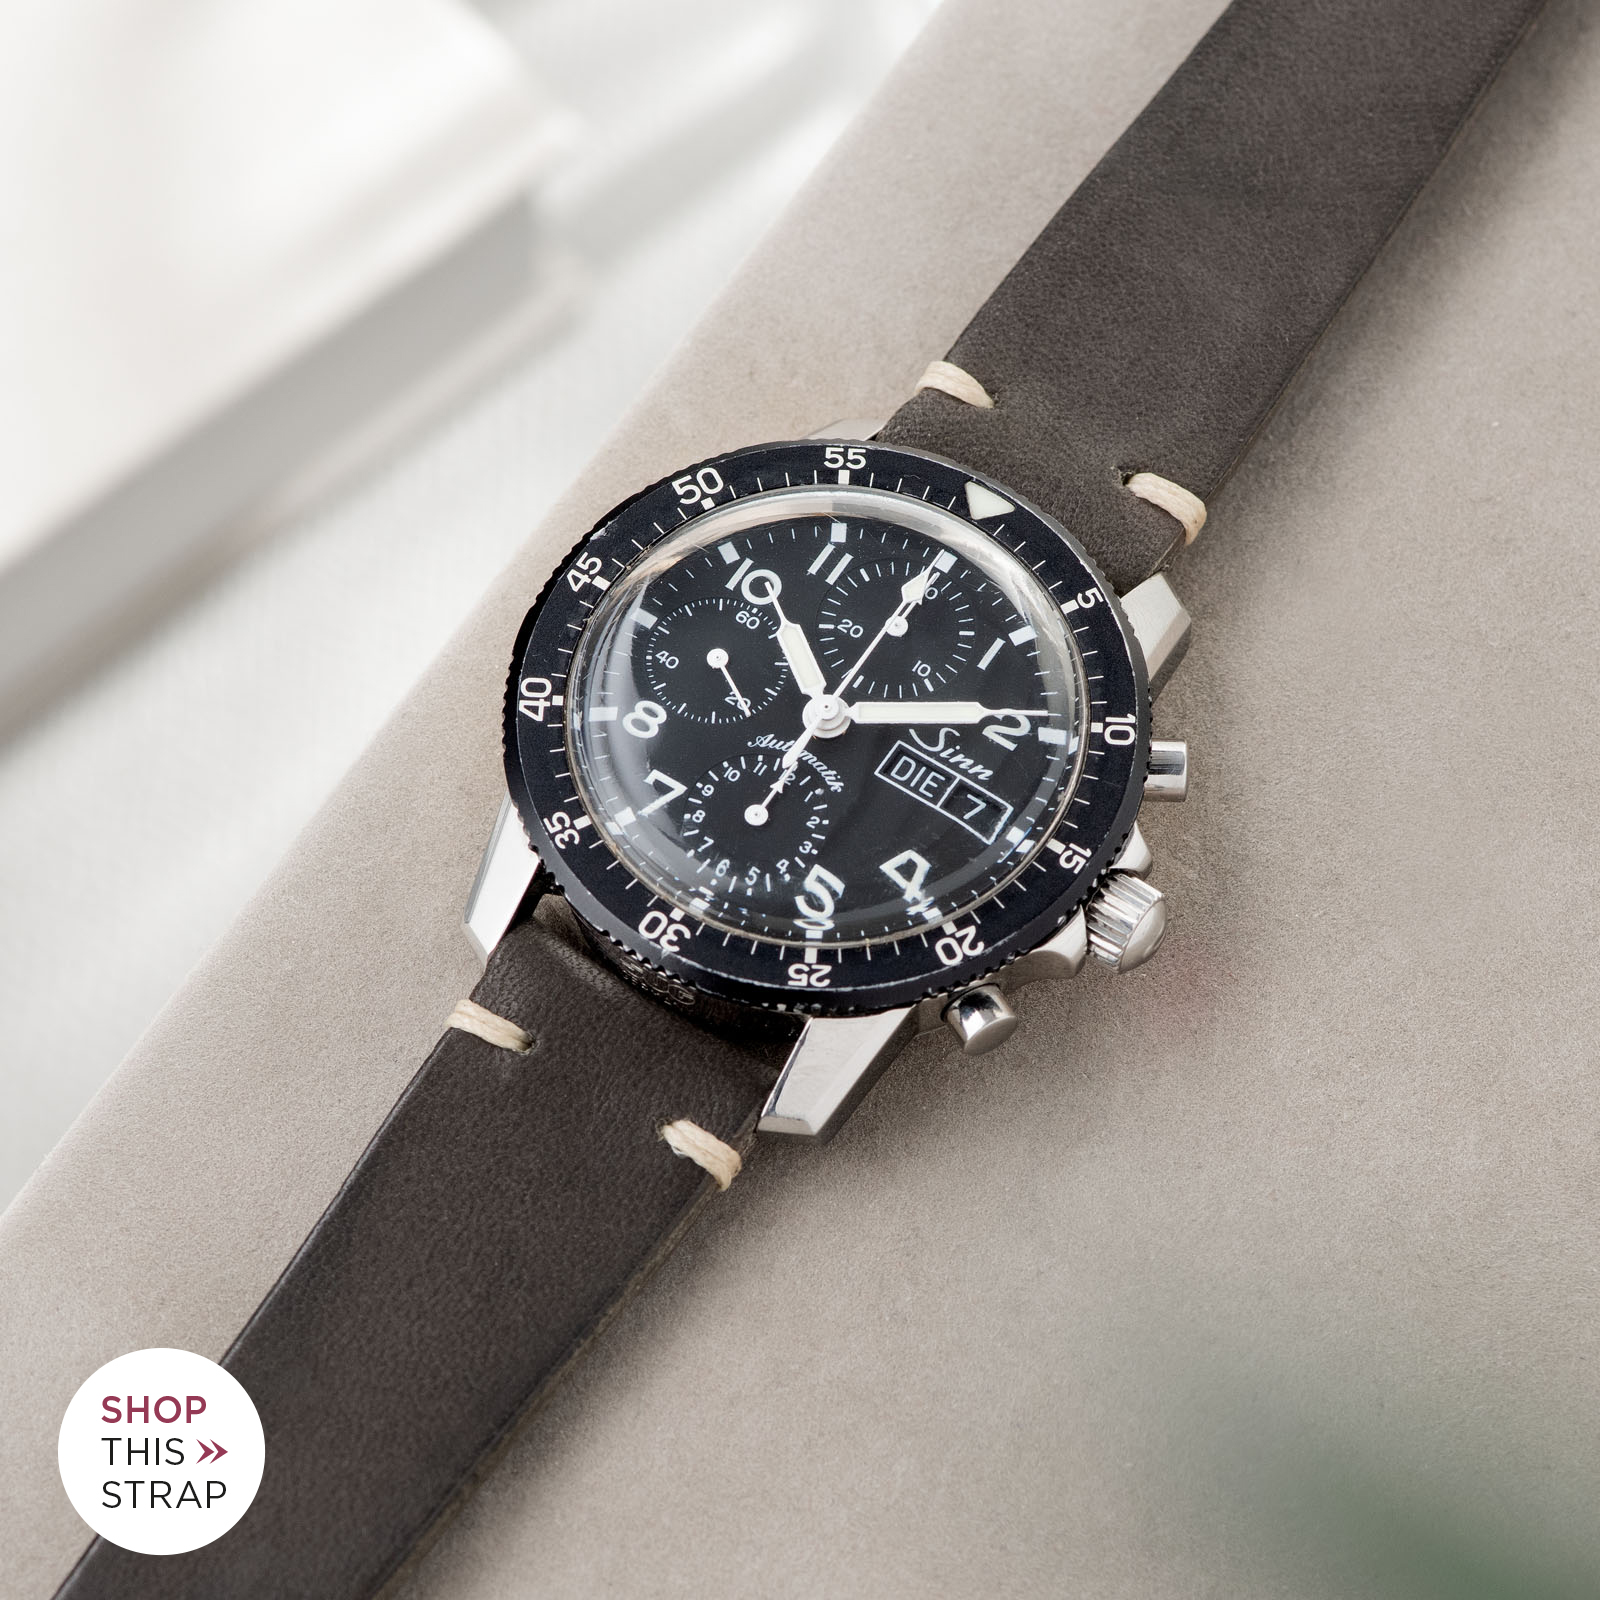 Bulang and Sons_Strap Guide_Sinn 103_Piombo Grey Leather Watch Strap